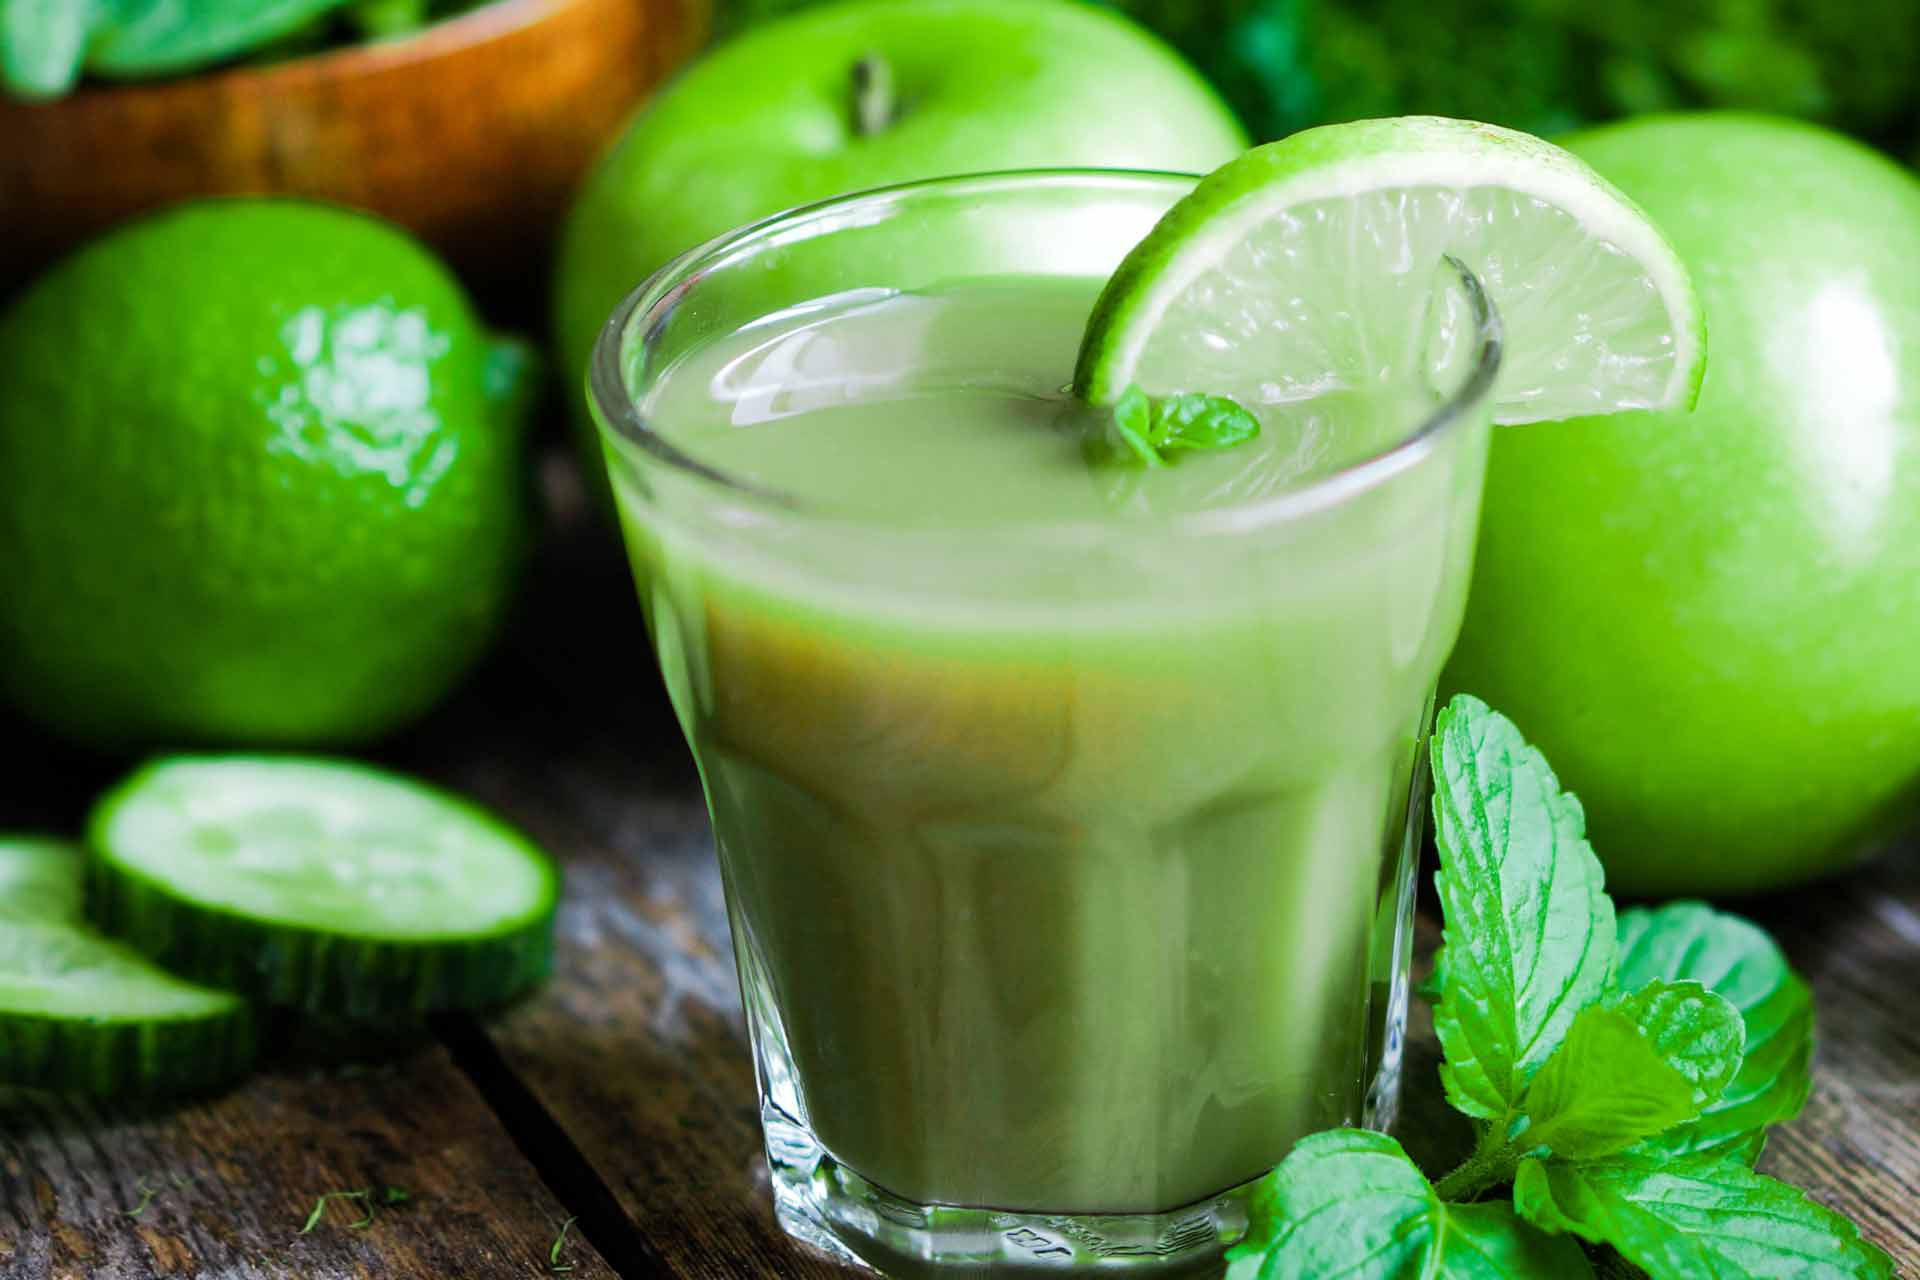 applpe-and-lime-juice